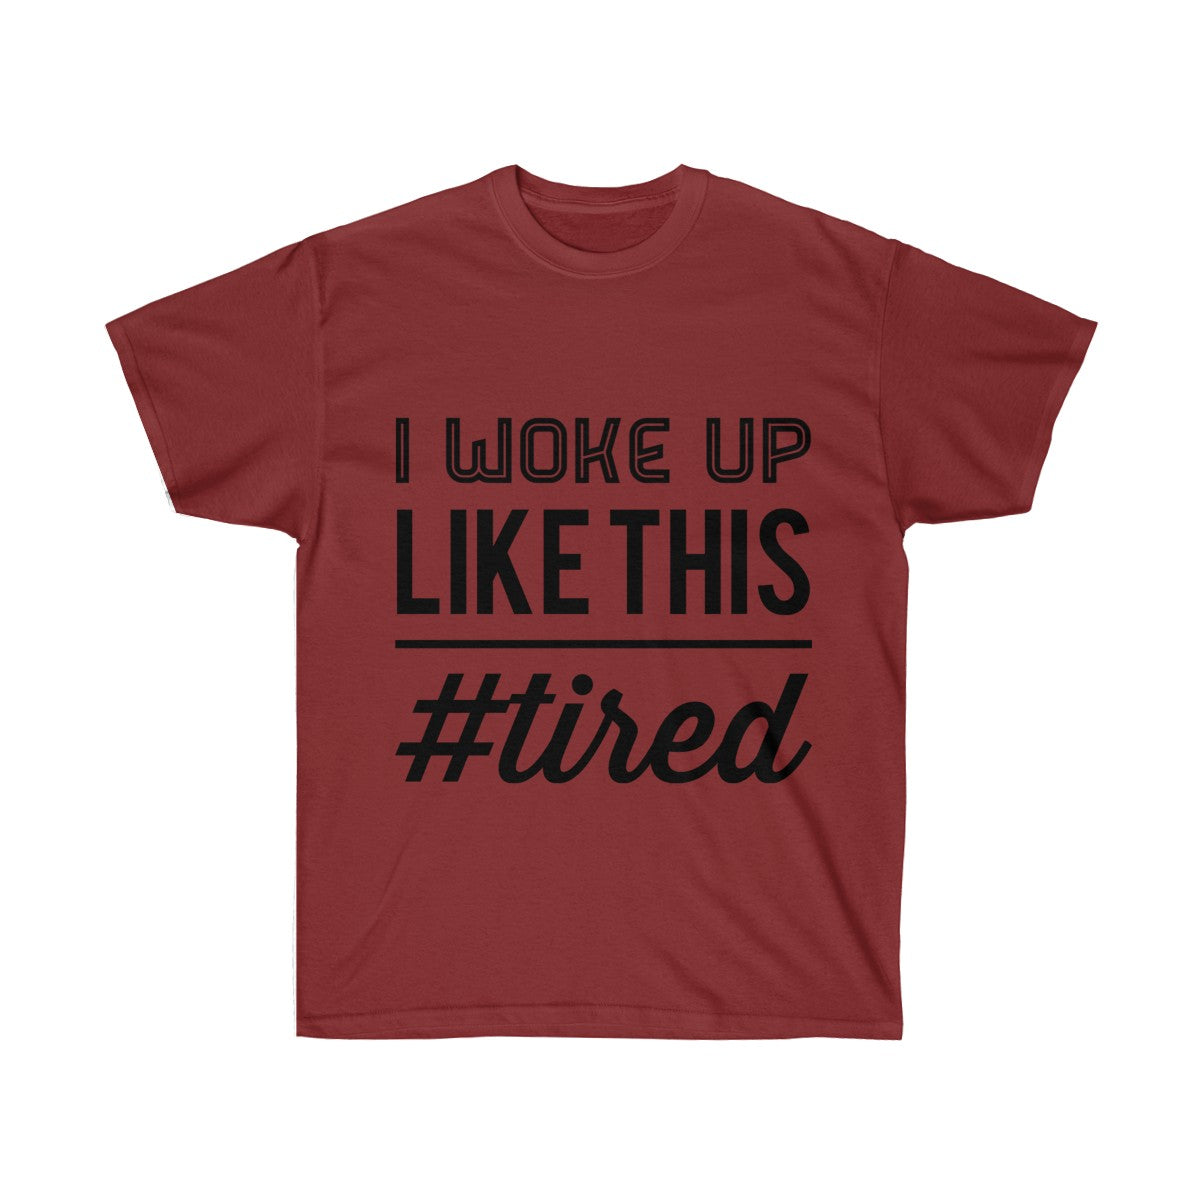 I Woke Up Like This #tired